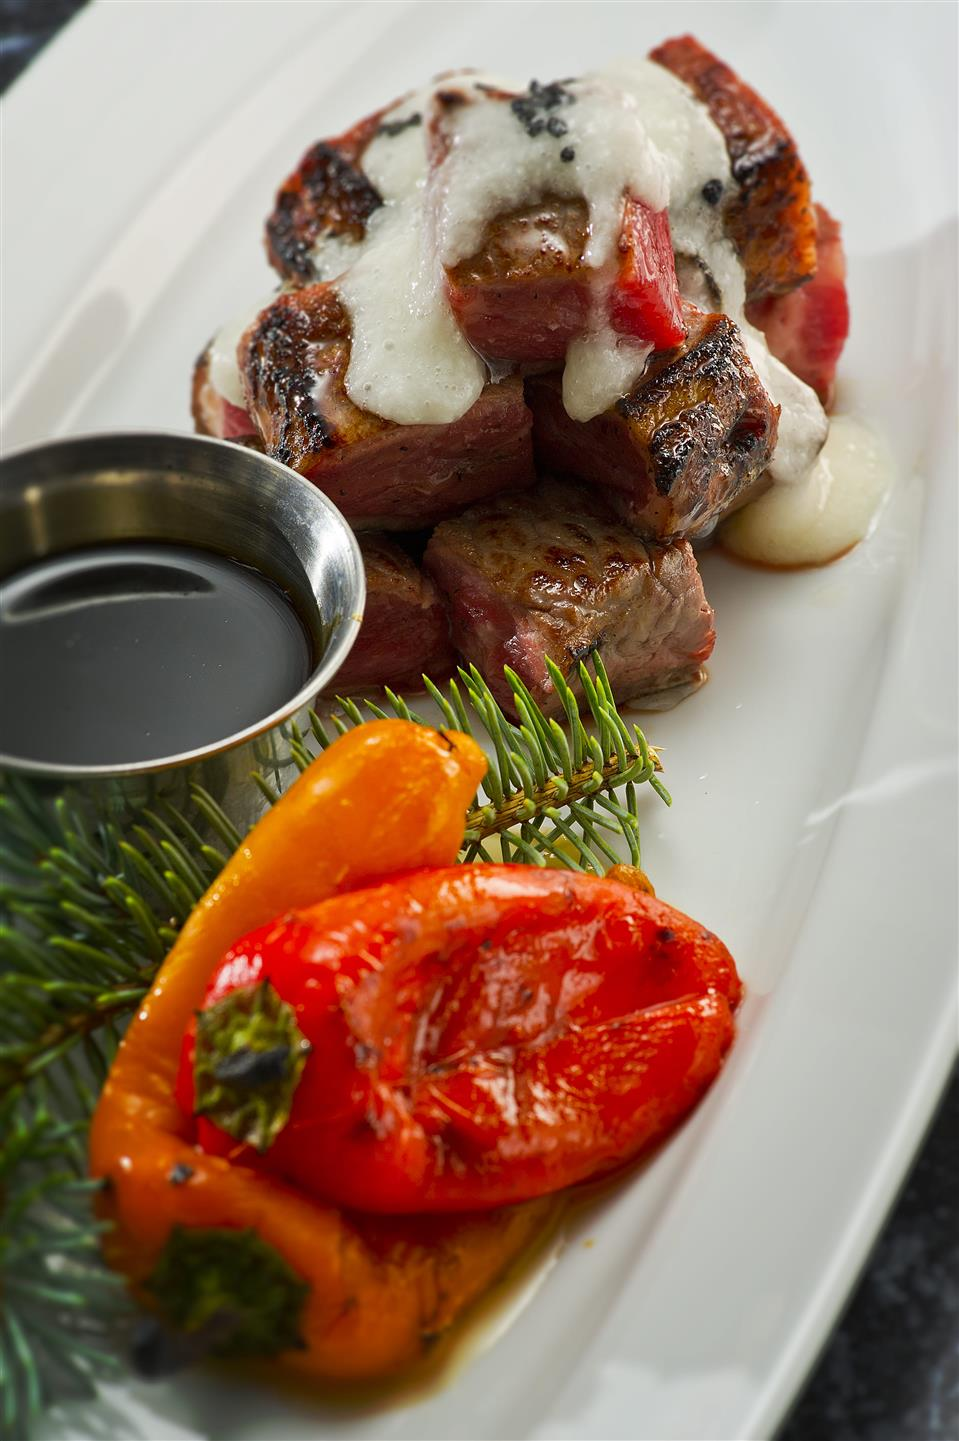 seared steak pieces served with a creamy sauce and roasted peppers